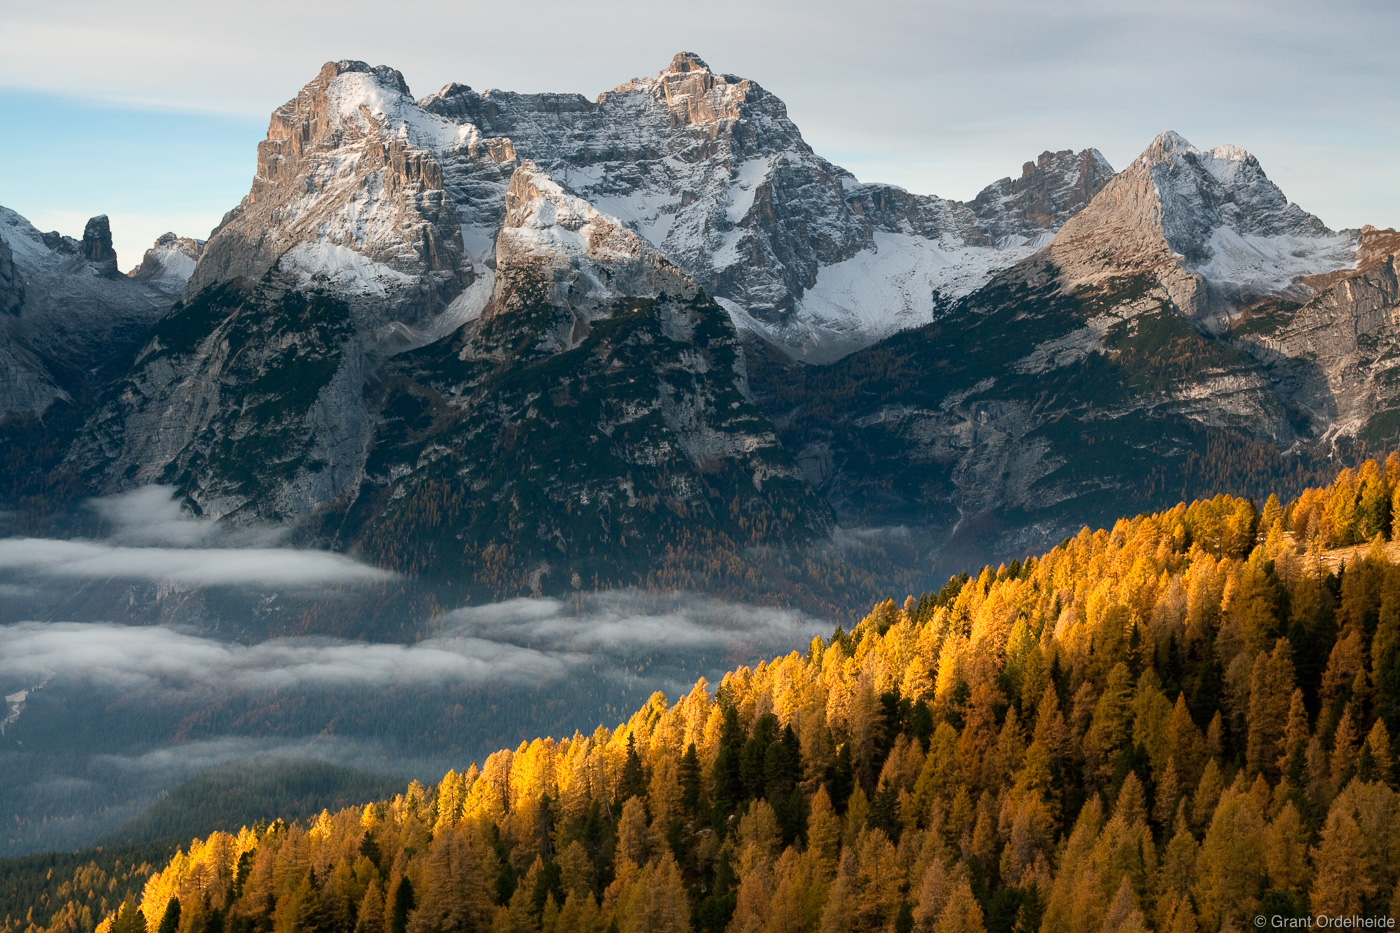 Early morning scene of clouds, larch trees, and theSorapiss Group in the Dolomite Mountains.